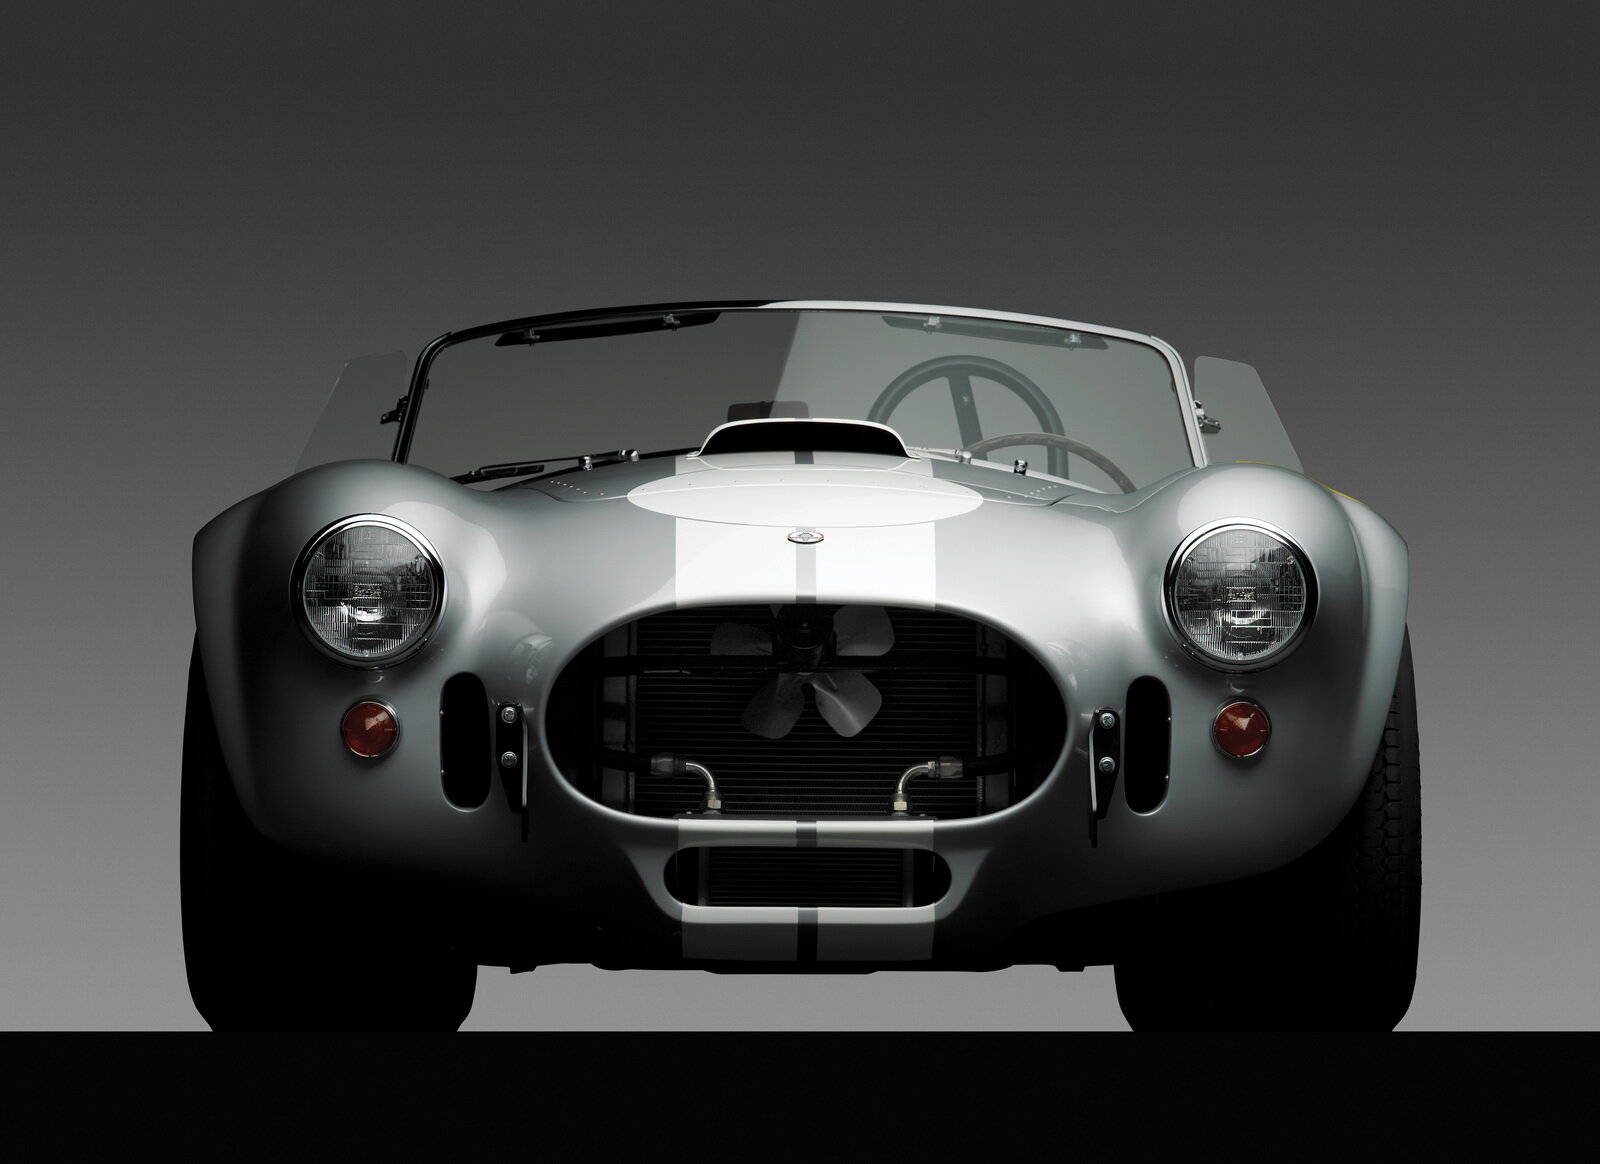 shelby-cobra-427-is-up-for-sale_100638129_h.jpg